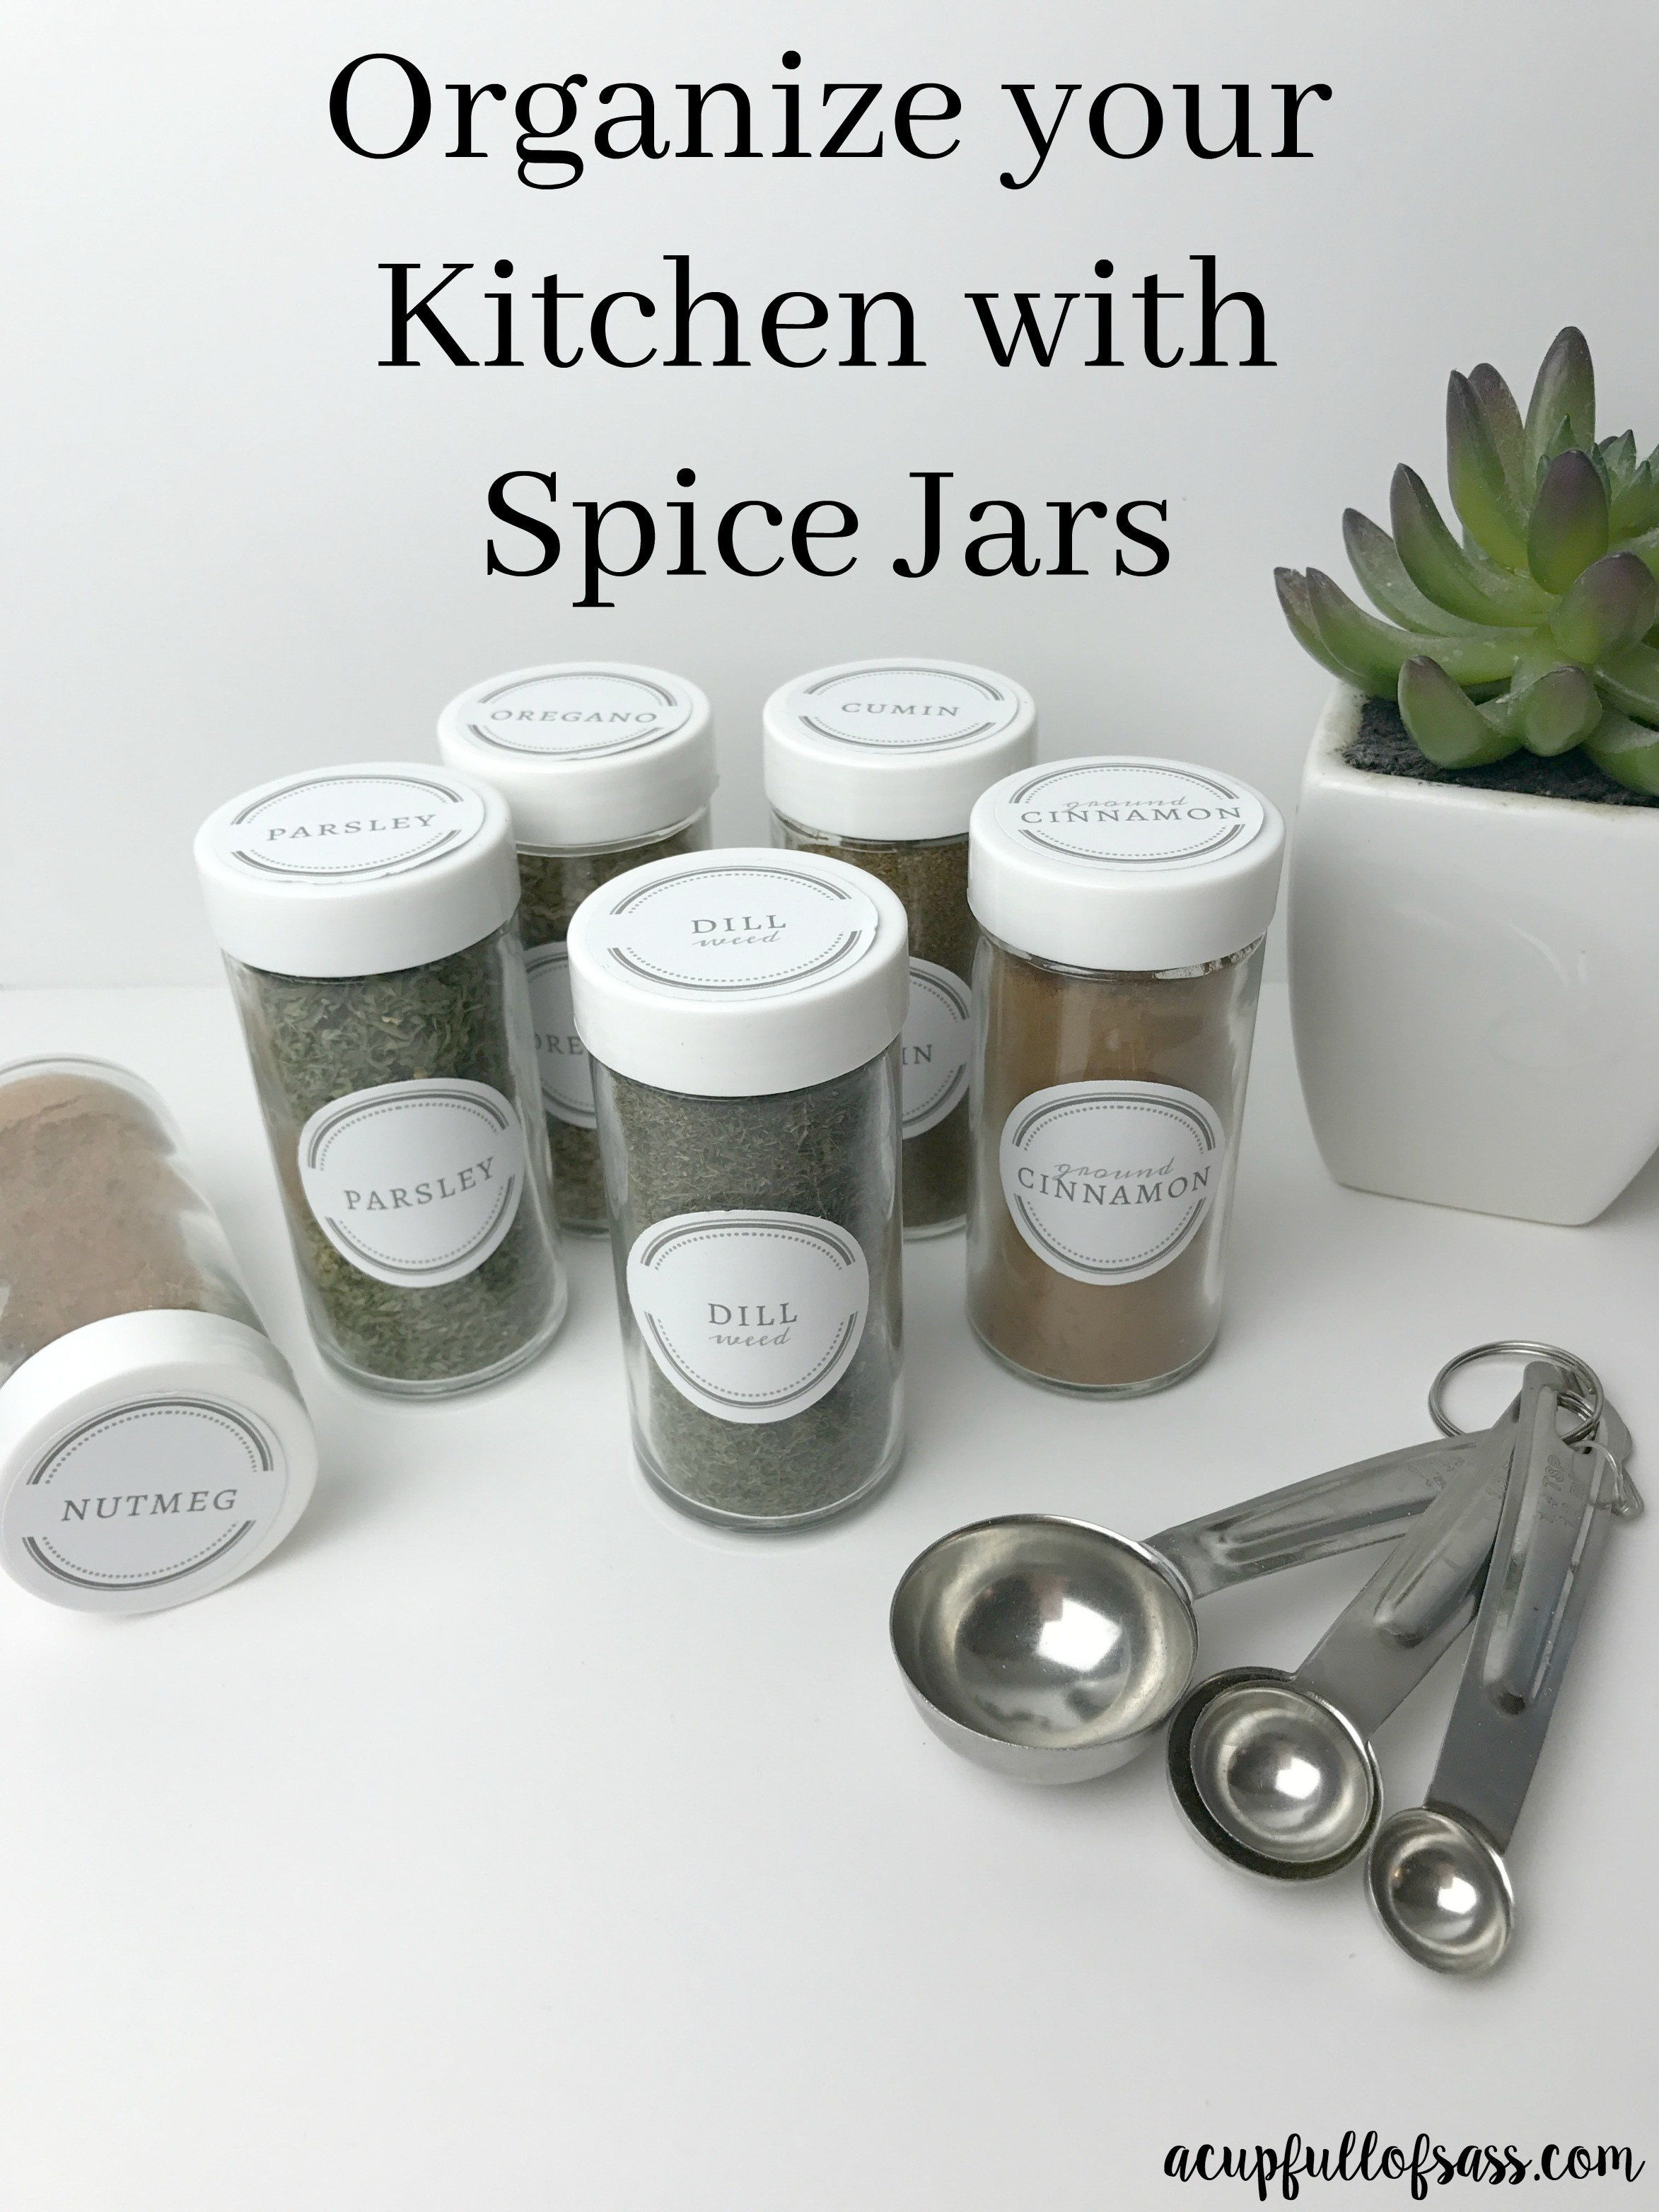 Kitchen Organization using Spice Jars